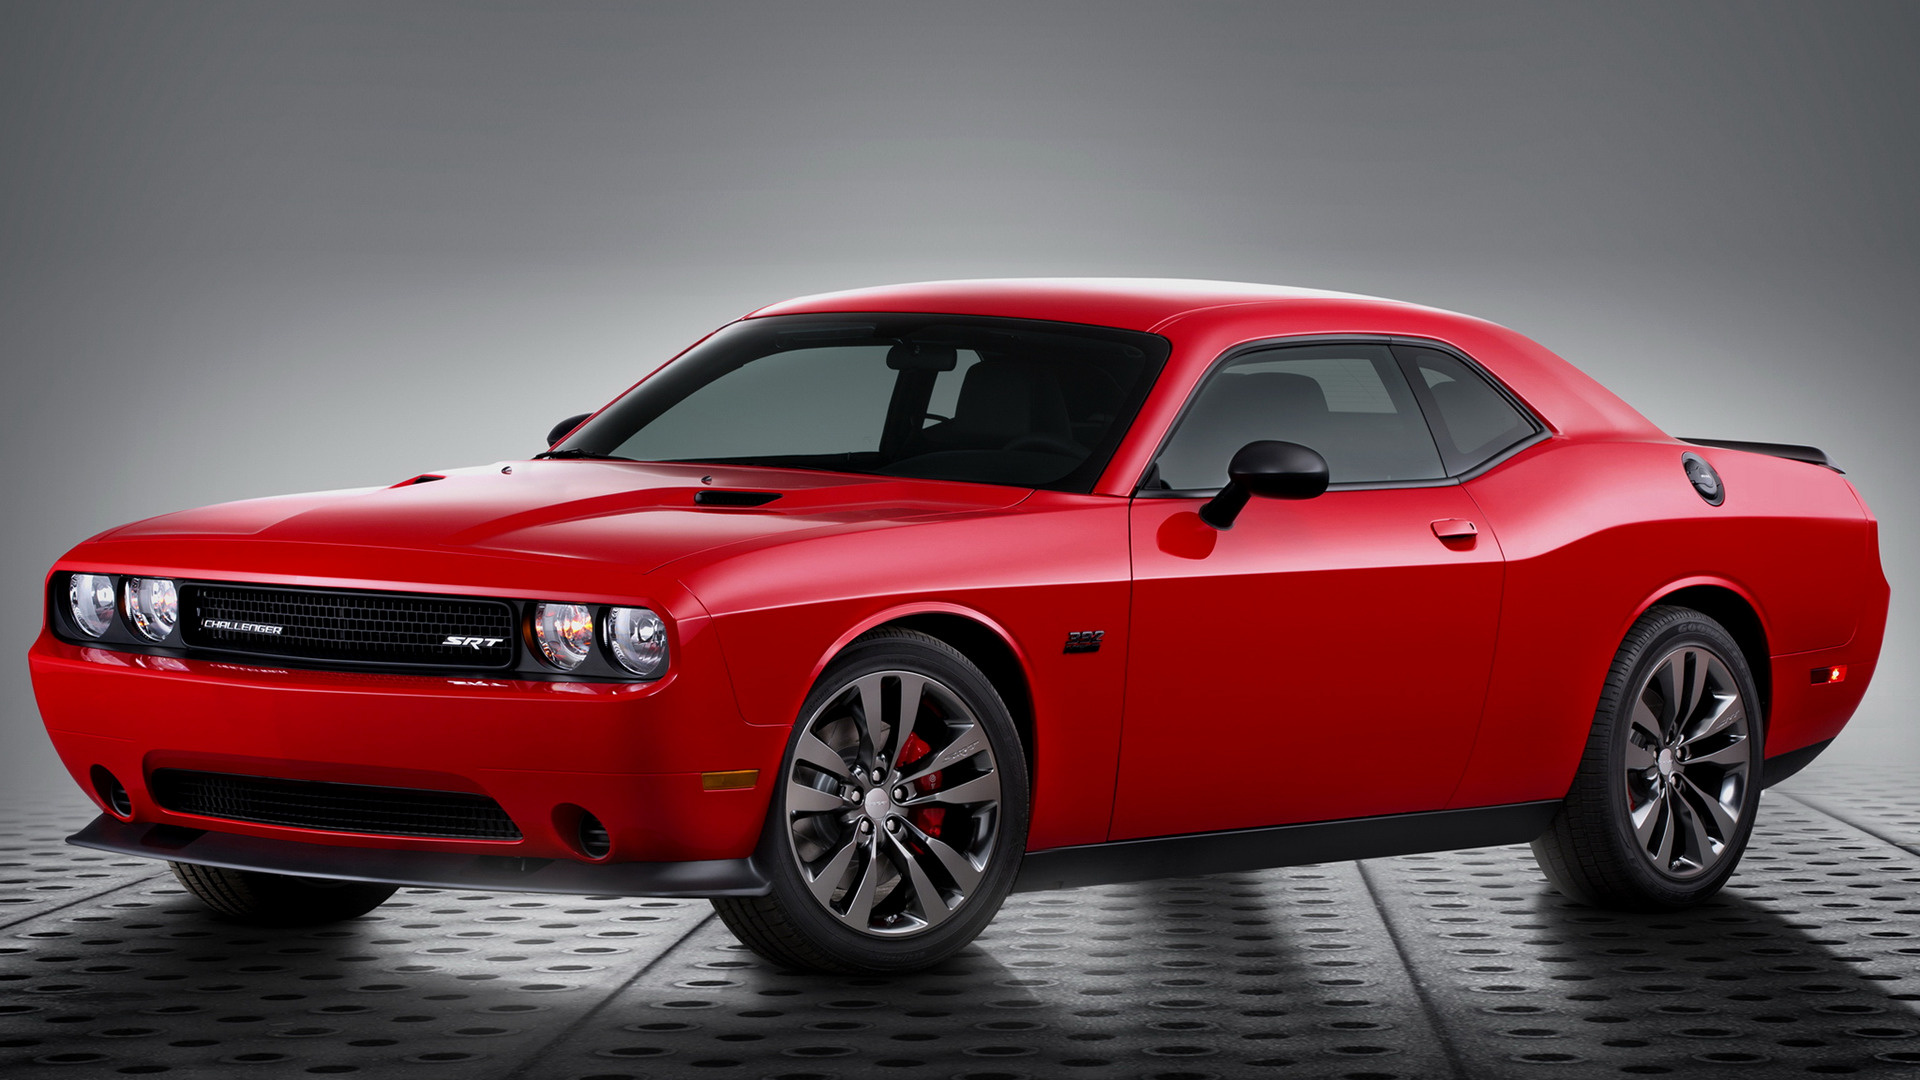 Dodge Challenger Srt8 >> 2014 Dodge Challenger SRT8 Satin Vapor - Wallpapers and HD ...